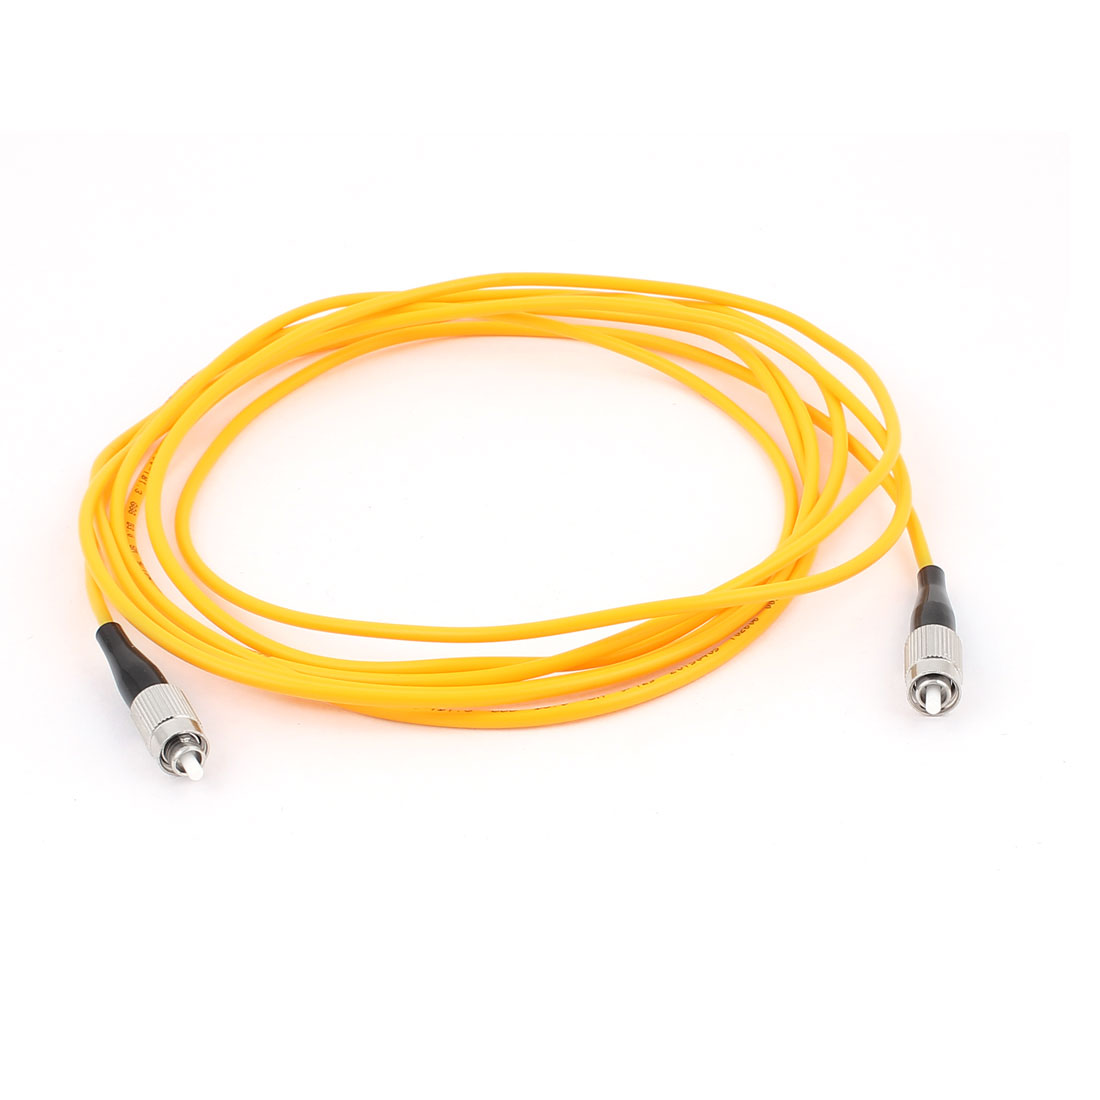 3.0M 9/125 Jumper Cable Simplex Singlemode FC-FC Fiber Optic Cord